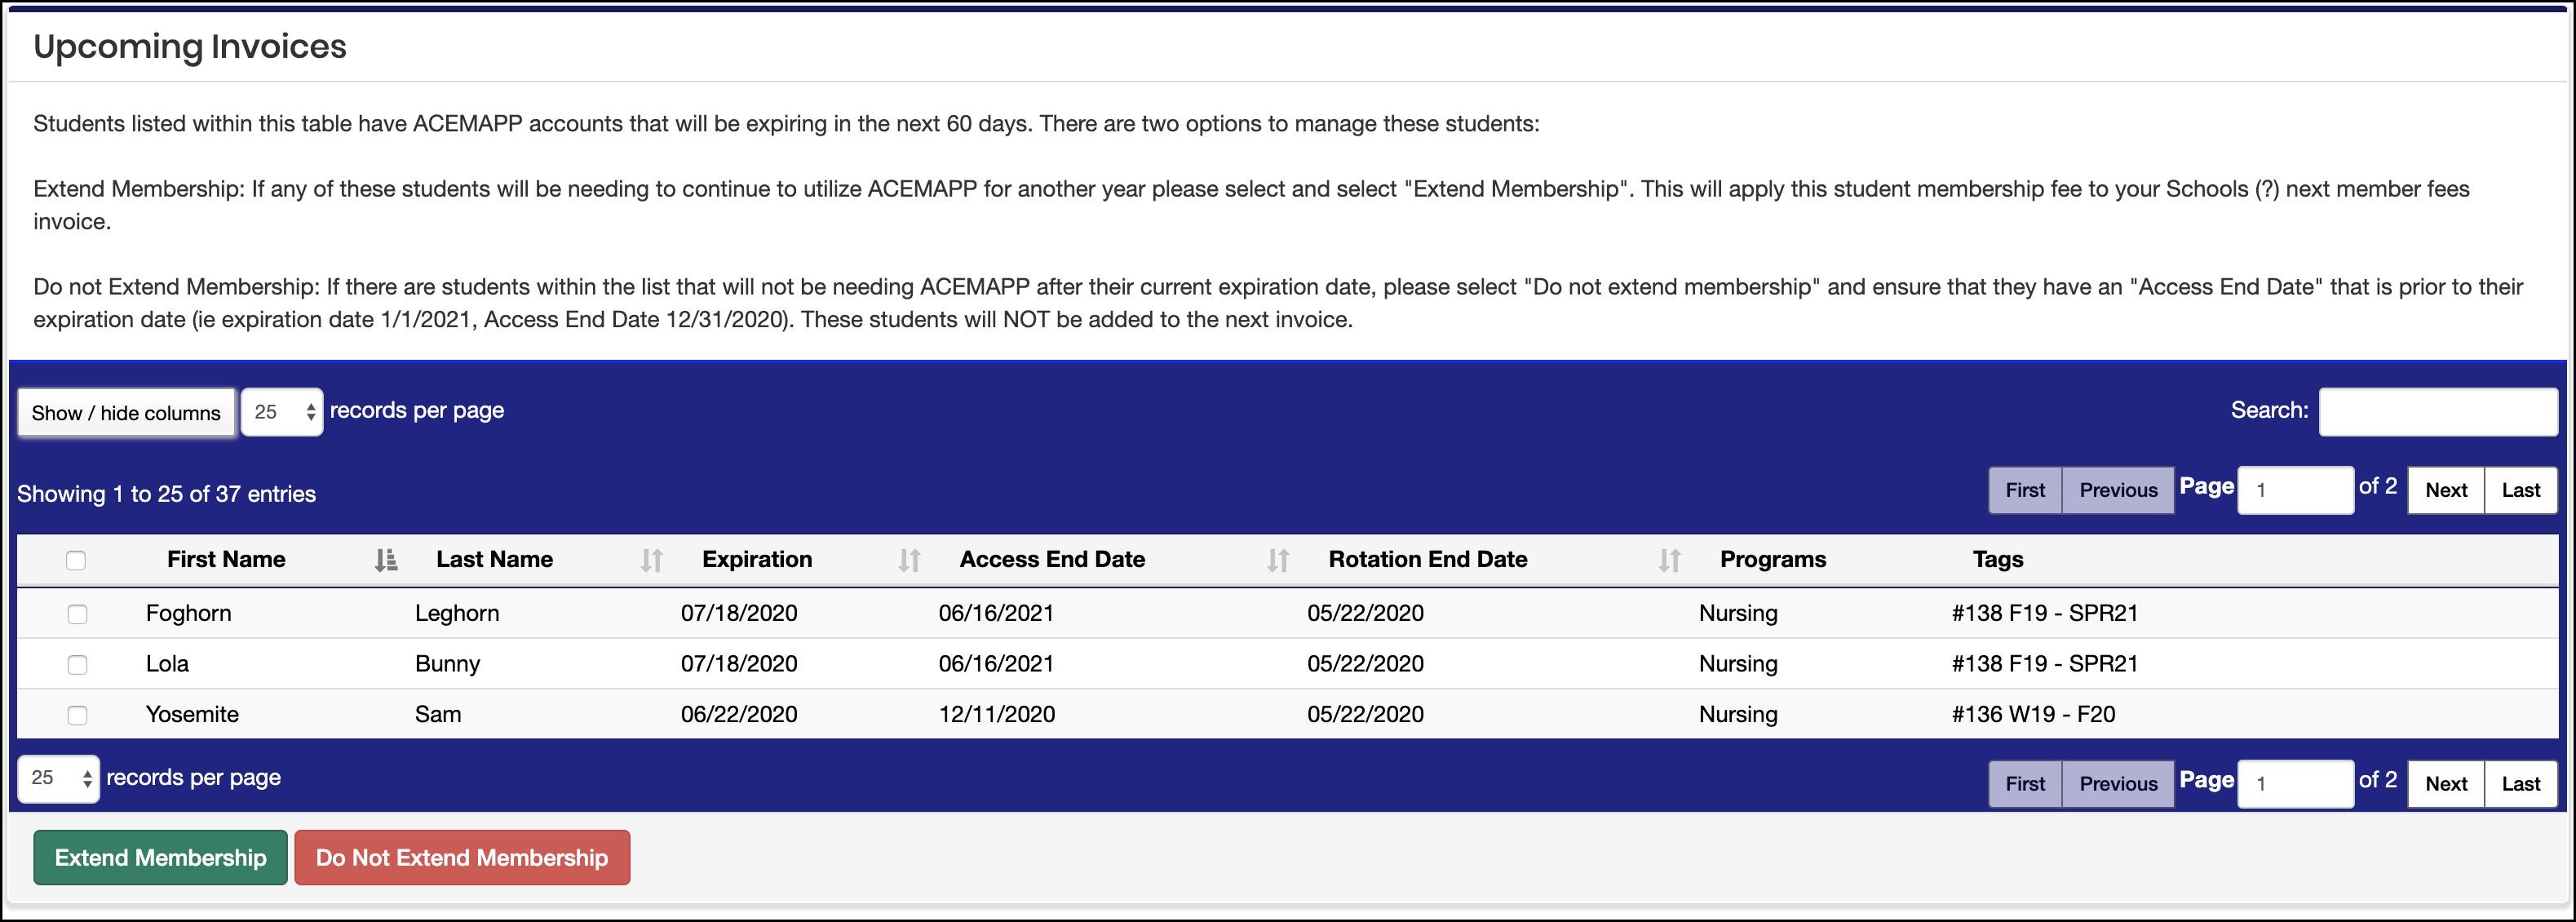 Upcoming Invoices screen example